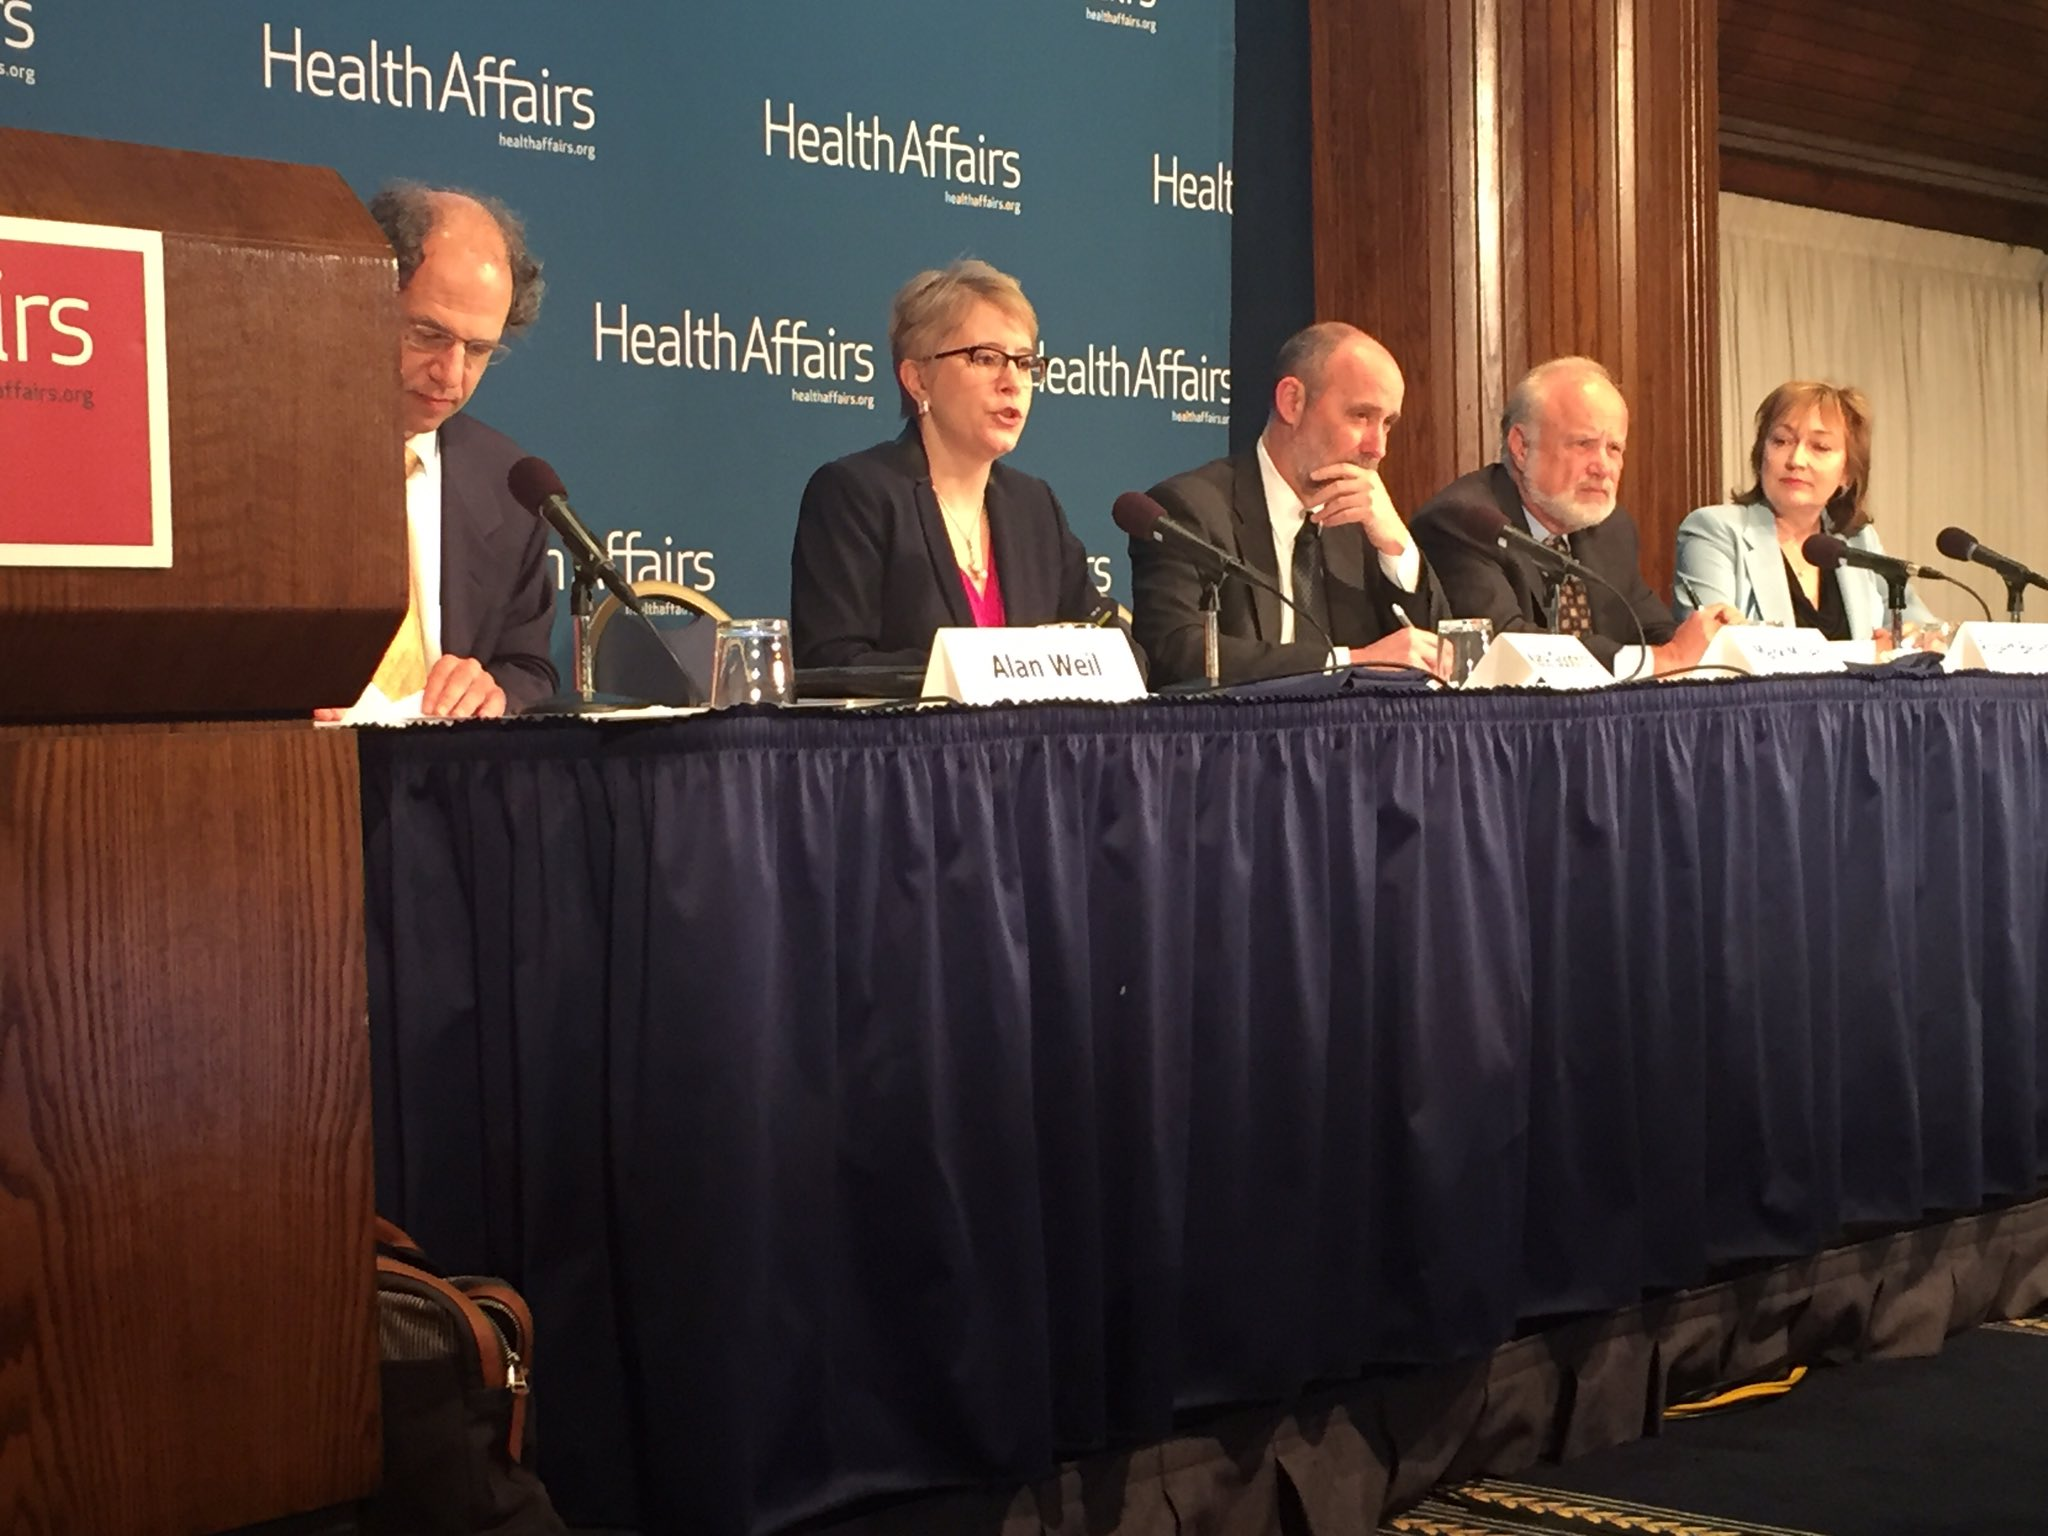 Starting @Health_Affairs Forum on Future of Value Based Payment #valuepayment at National Press Club https://t.co/AGltBVYbpO